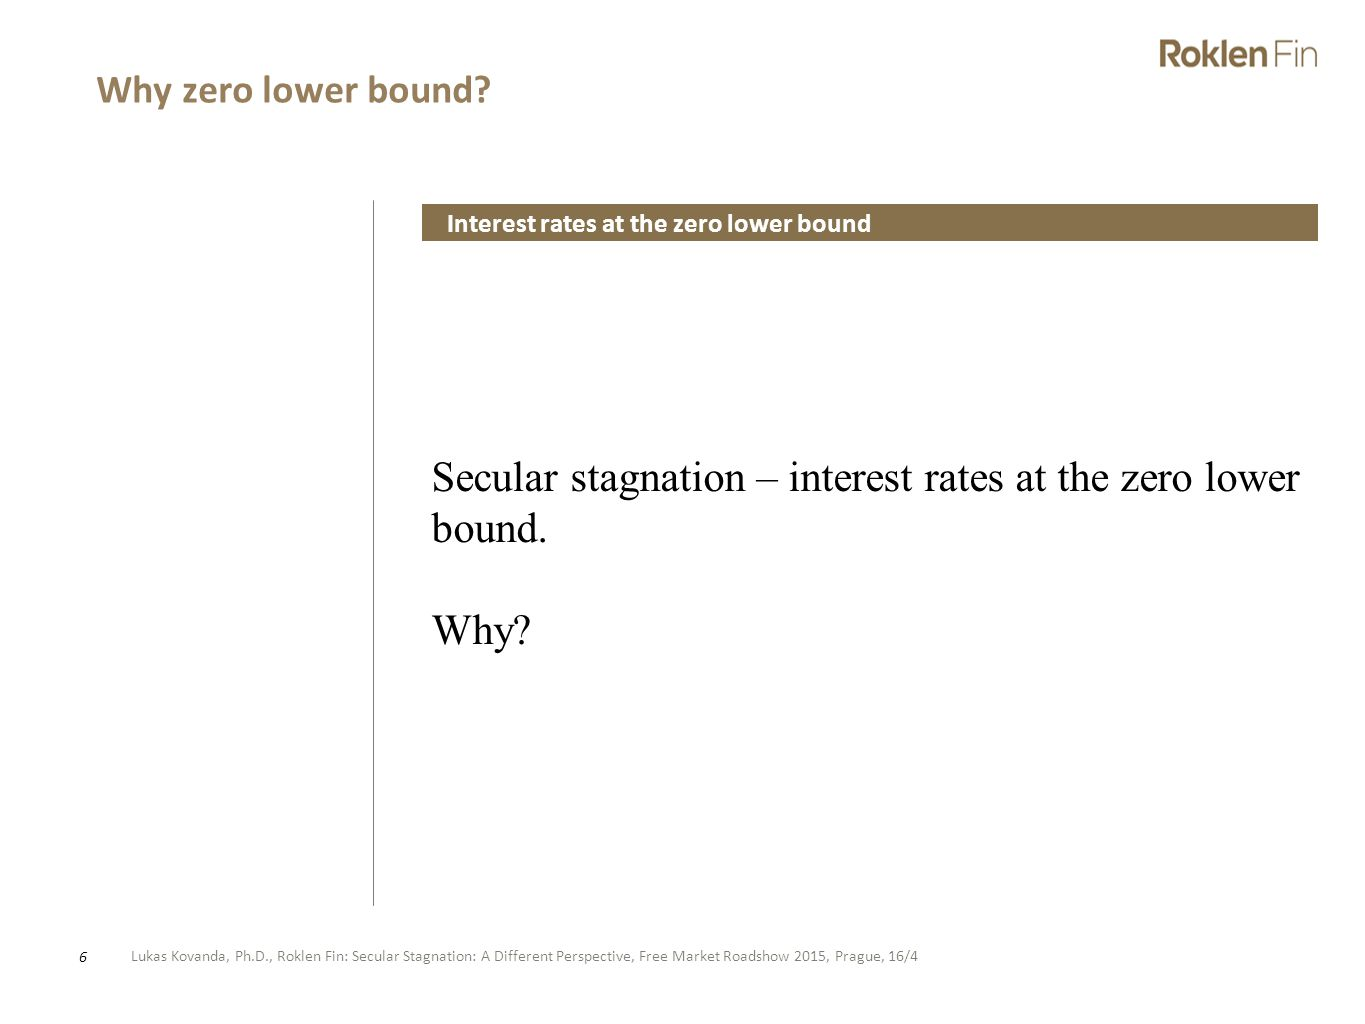 Lukas Kovanda, Ph.D., Roklen Fin: Secular Stagnation: A Different Perspective, Free Market Roadshow 2015, Prague, 16/4 6 Secular stagnation – interest rates at the zero lower bound.